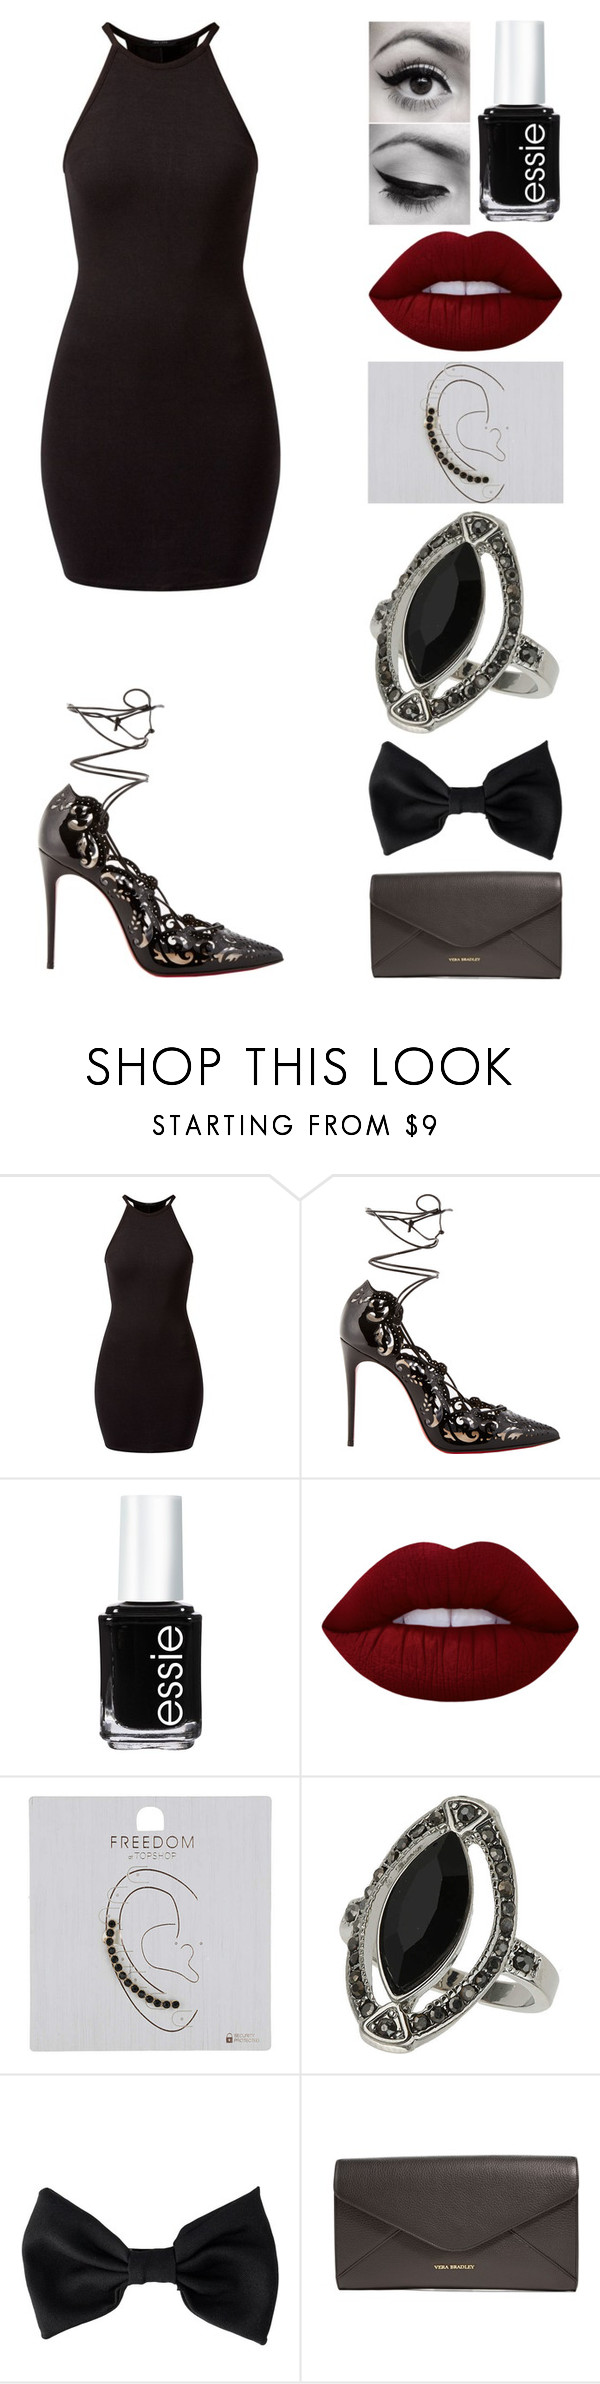 """""""Untitled #115"""" by emmmalaw ❤ liked on Polyvore featuring Christian Louboutin, Essie, Lime Crime, Topshop, American Apparel and Vera Bradley"""